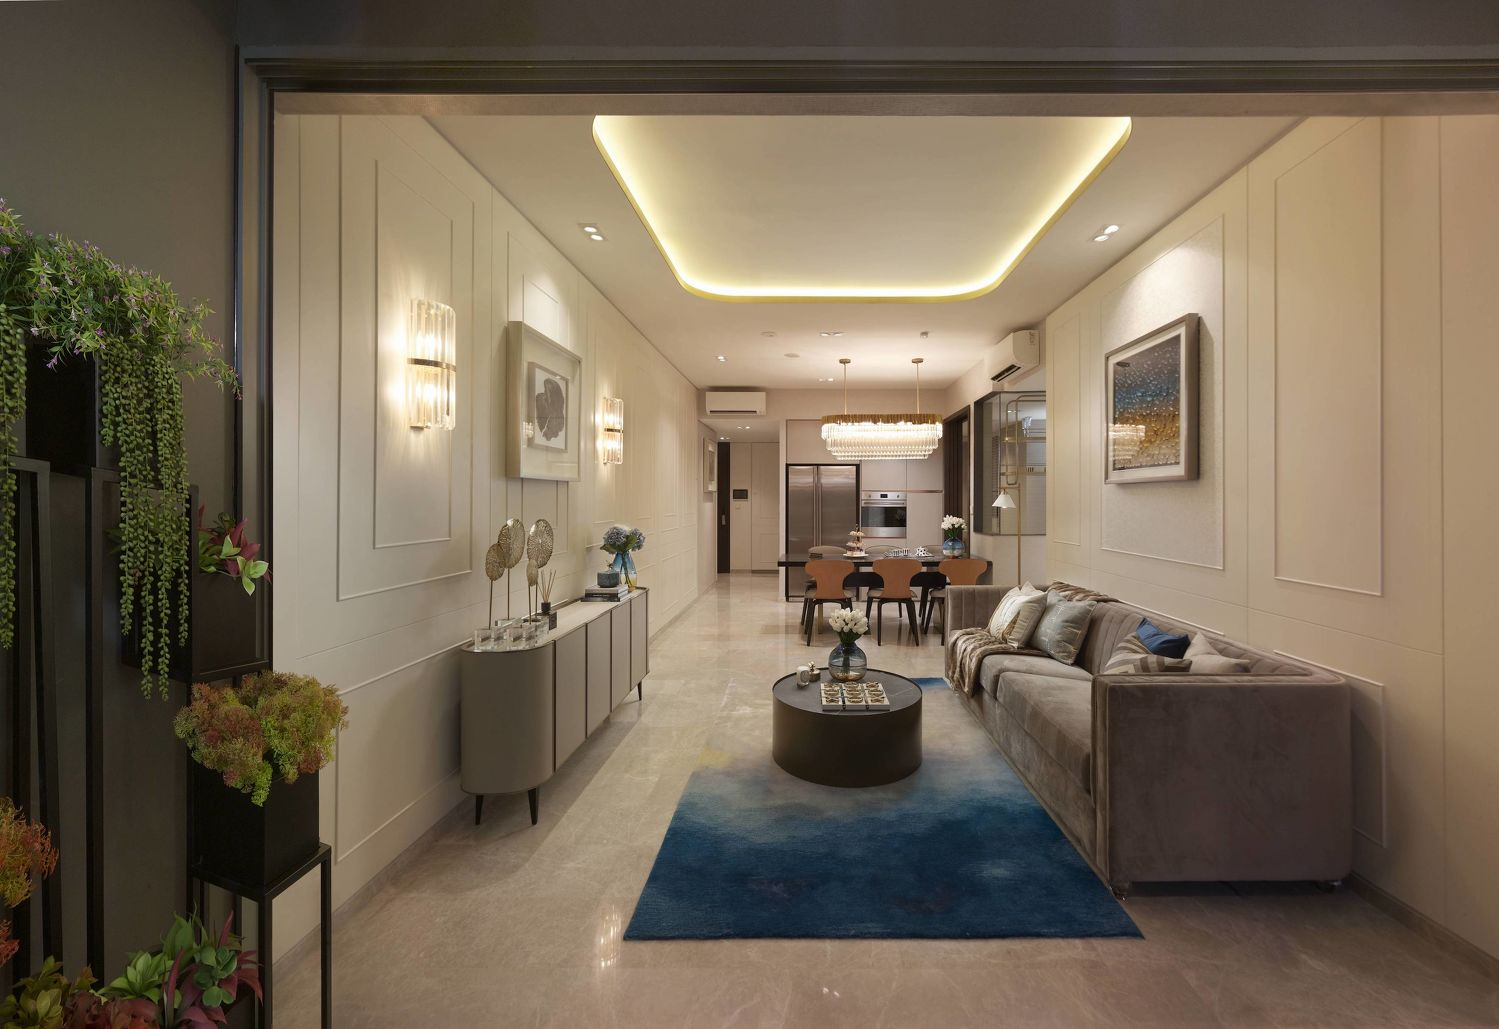 EDGEPROP SINGAPORE - One of the showflats at Qingjian Realty's JadeScape sales gallery, which will be open for viewing from Friday (Photo: Qingjian Realty)